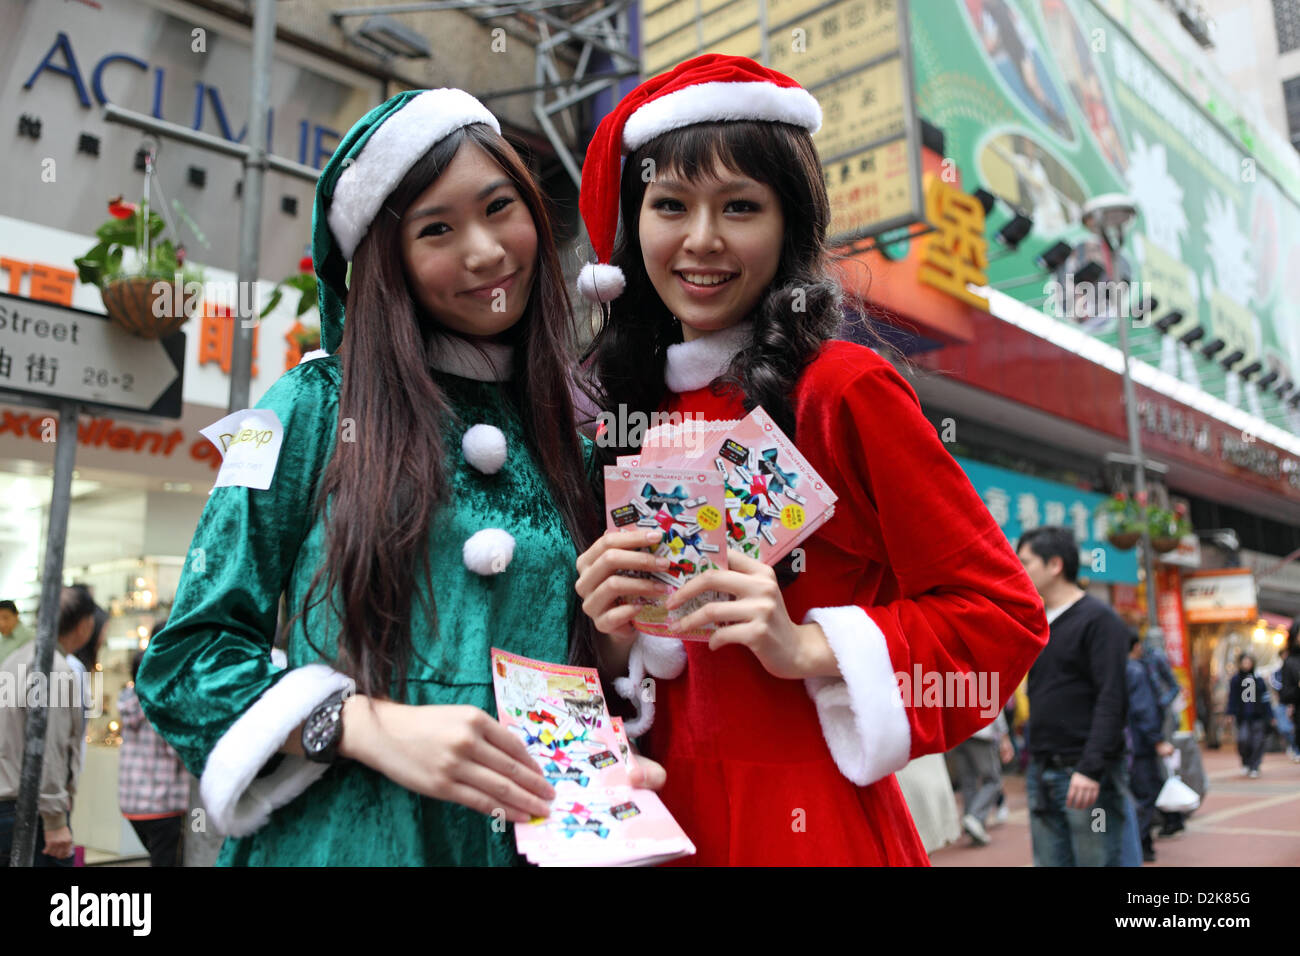 Hong Kong, China, disguised as Weihnachsmaenner Asian distribute promotional flyers - Stock Image